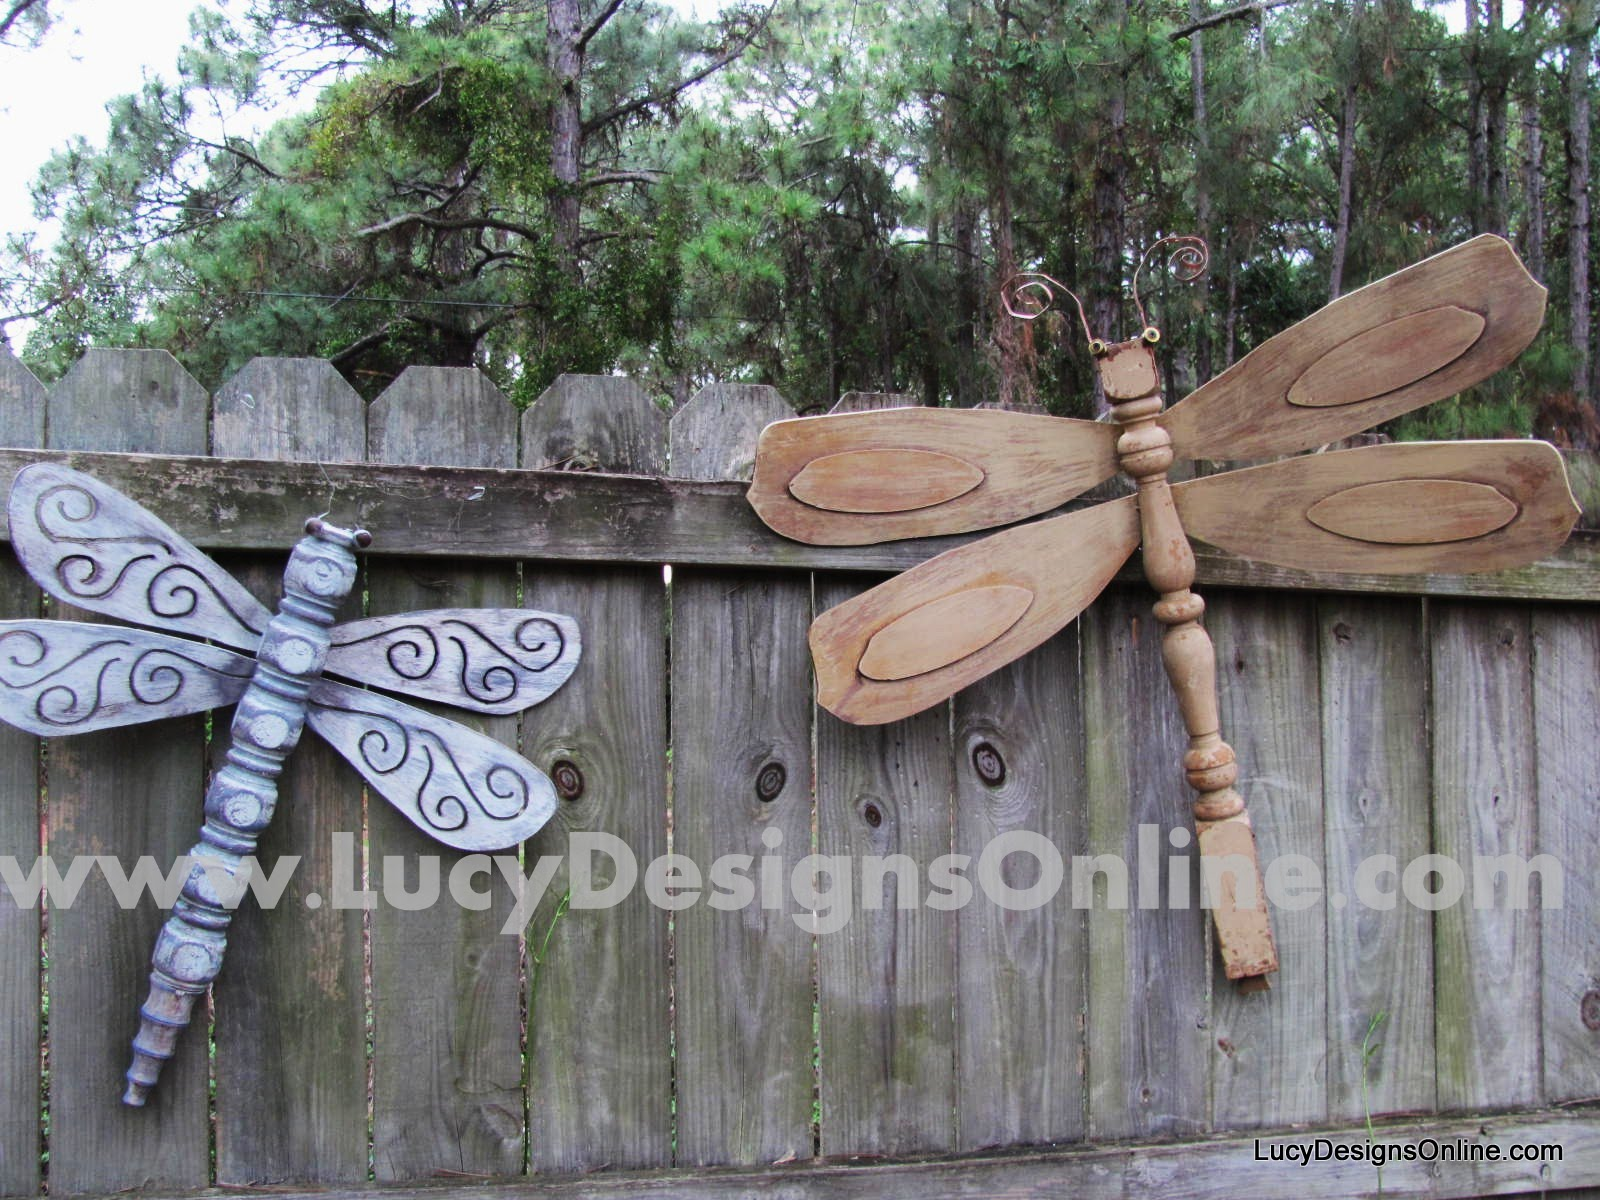 Table leg dragonflies part 1 lucy designs table leg dragonflies part 1 aloadofball Image collections